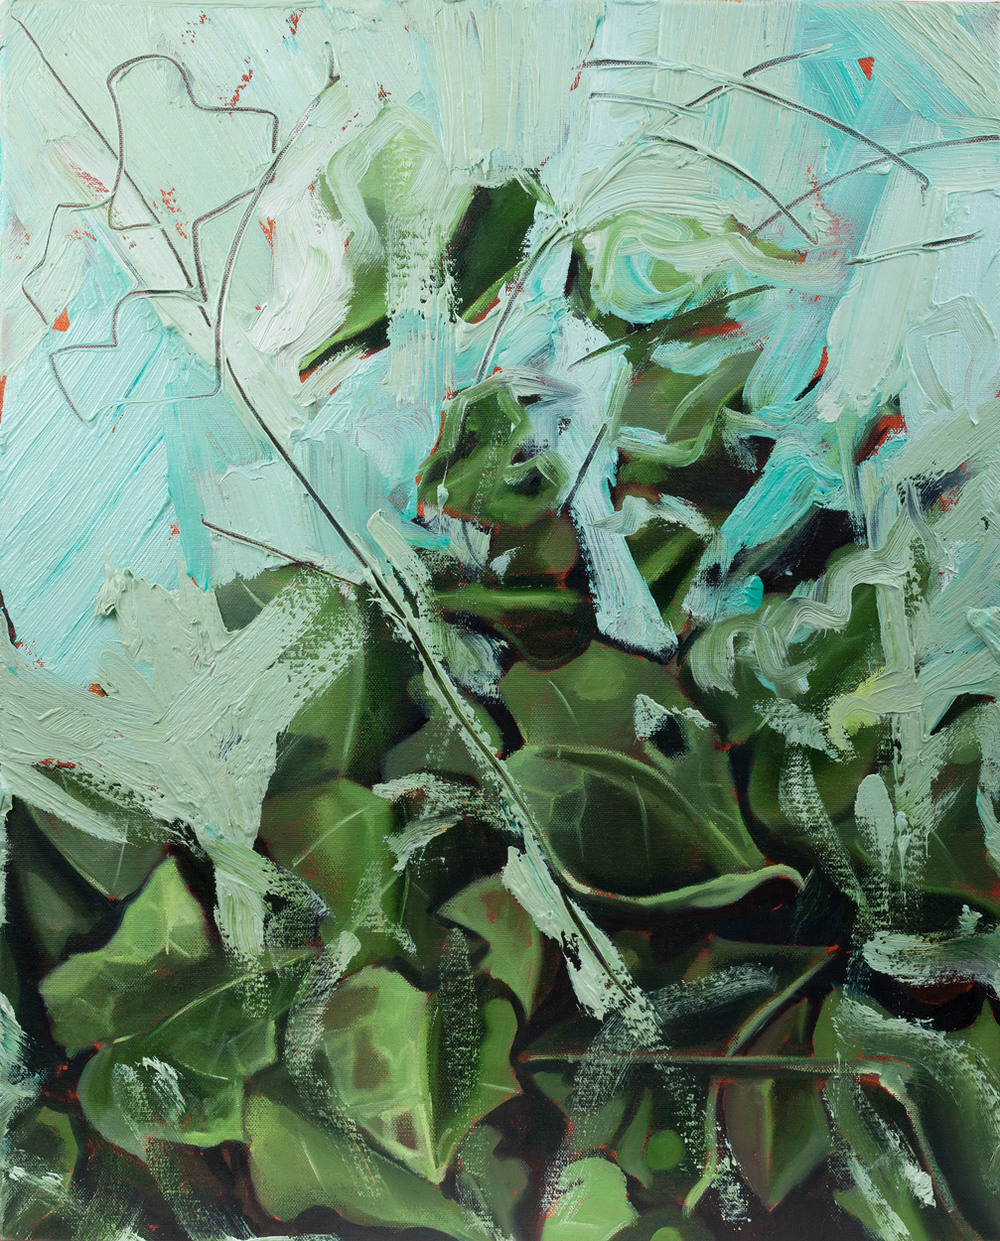 Ivy II, Oil and pencil on canvas, 70x50 cm, 2013